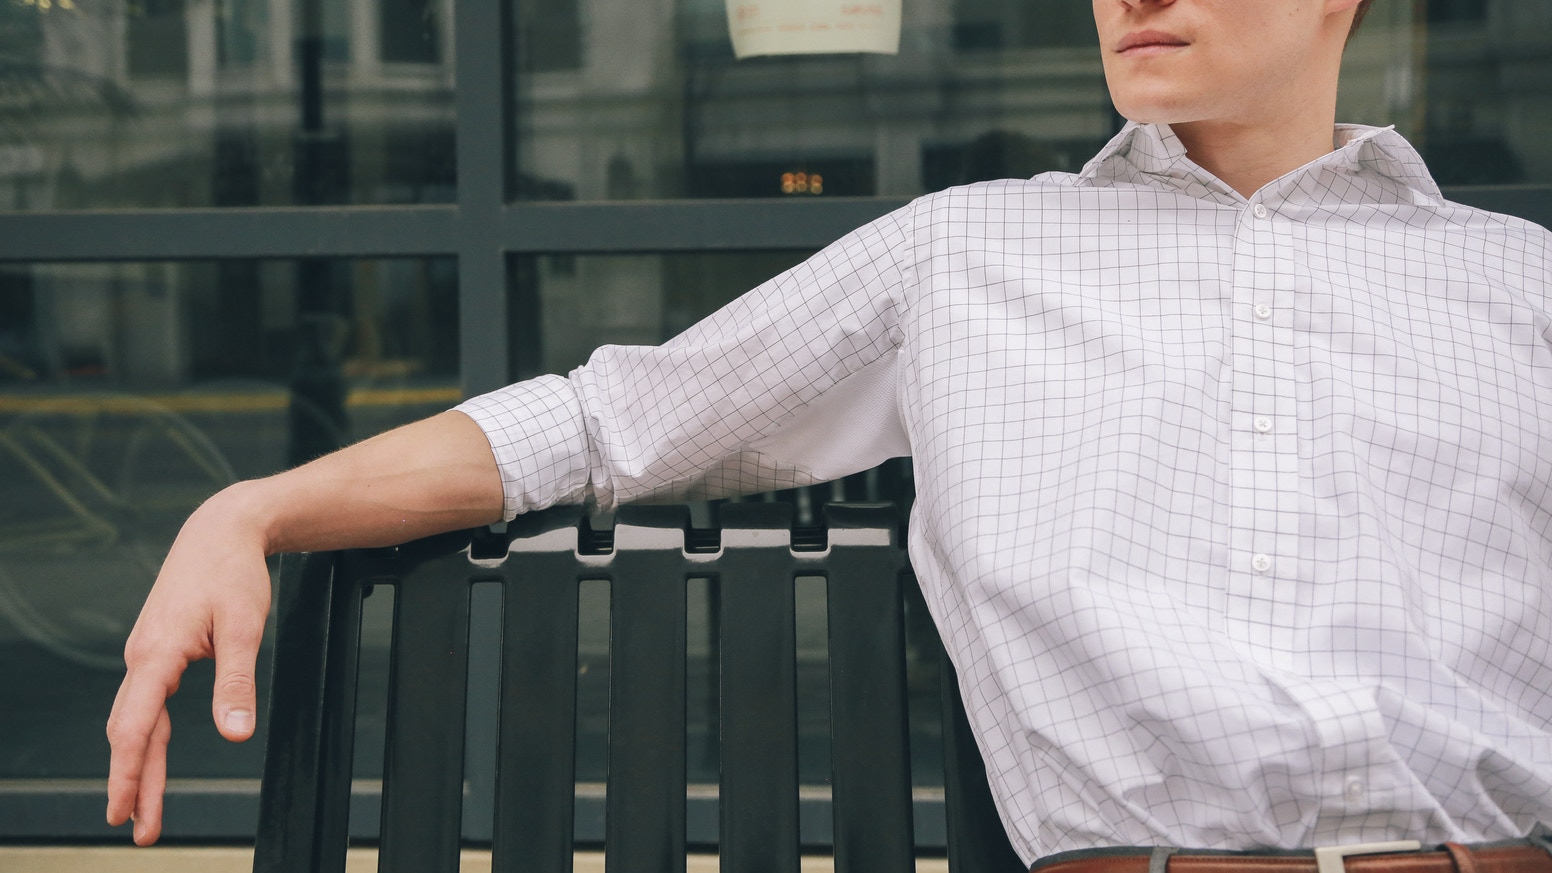 c971e69dd038 The first dress shirt to successfully blend 100% cotton with  moisture-wicking athletic wear